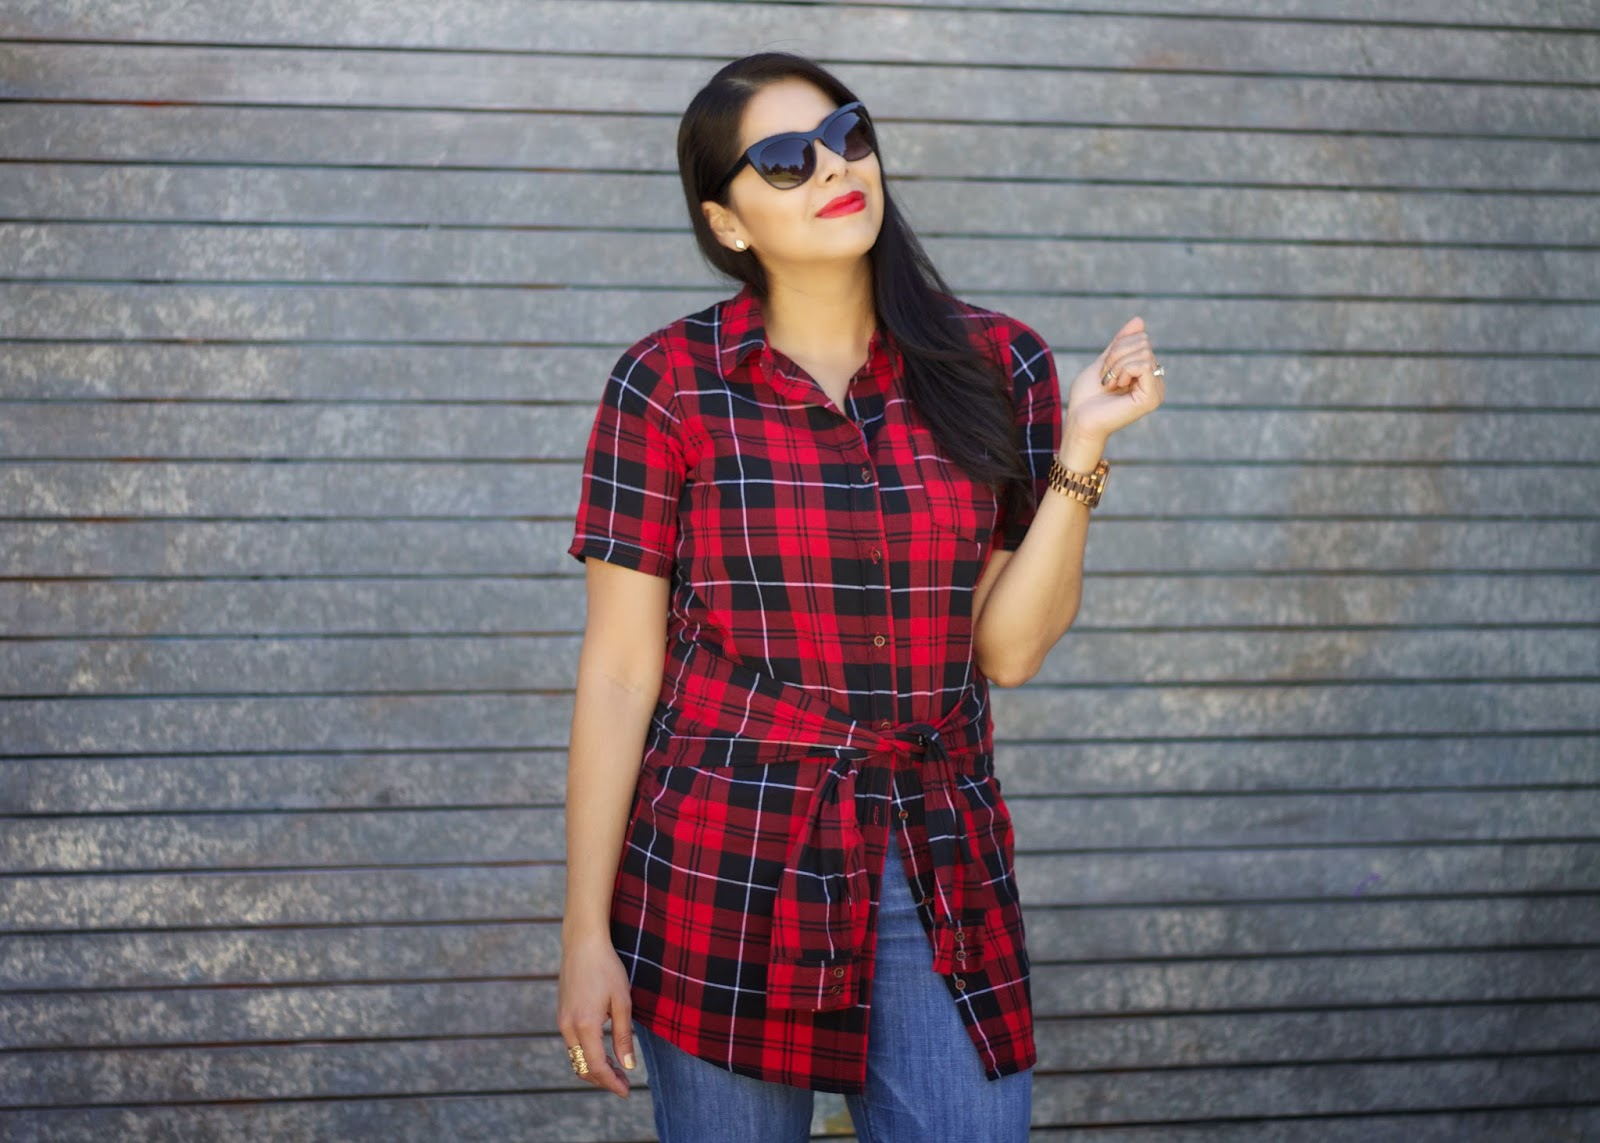 Cateye sunnies, lil bits of chic, plaid chic, tartan chic, chicness 2014, red lips chic